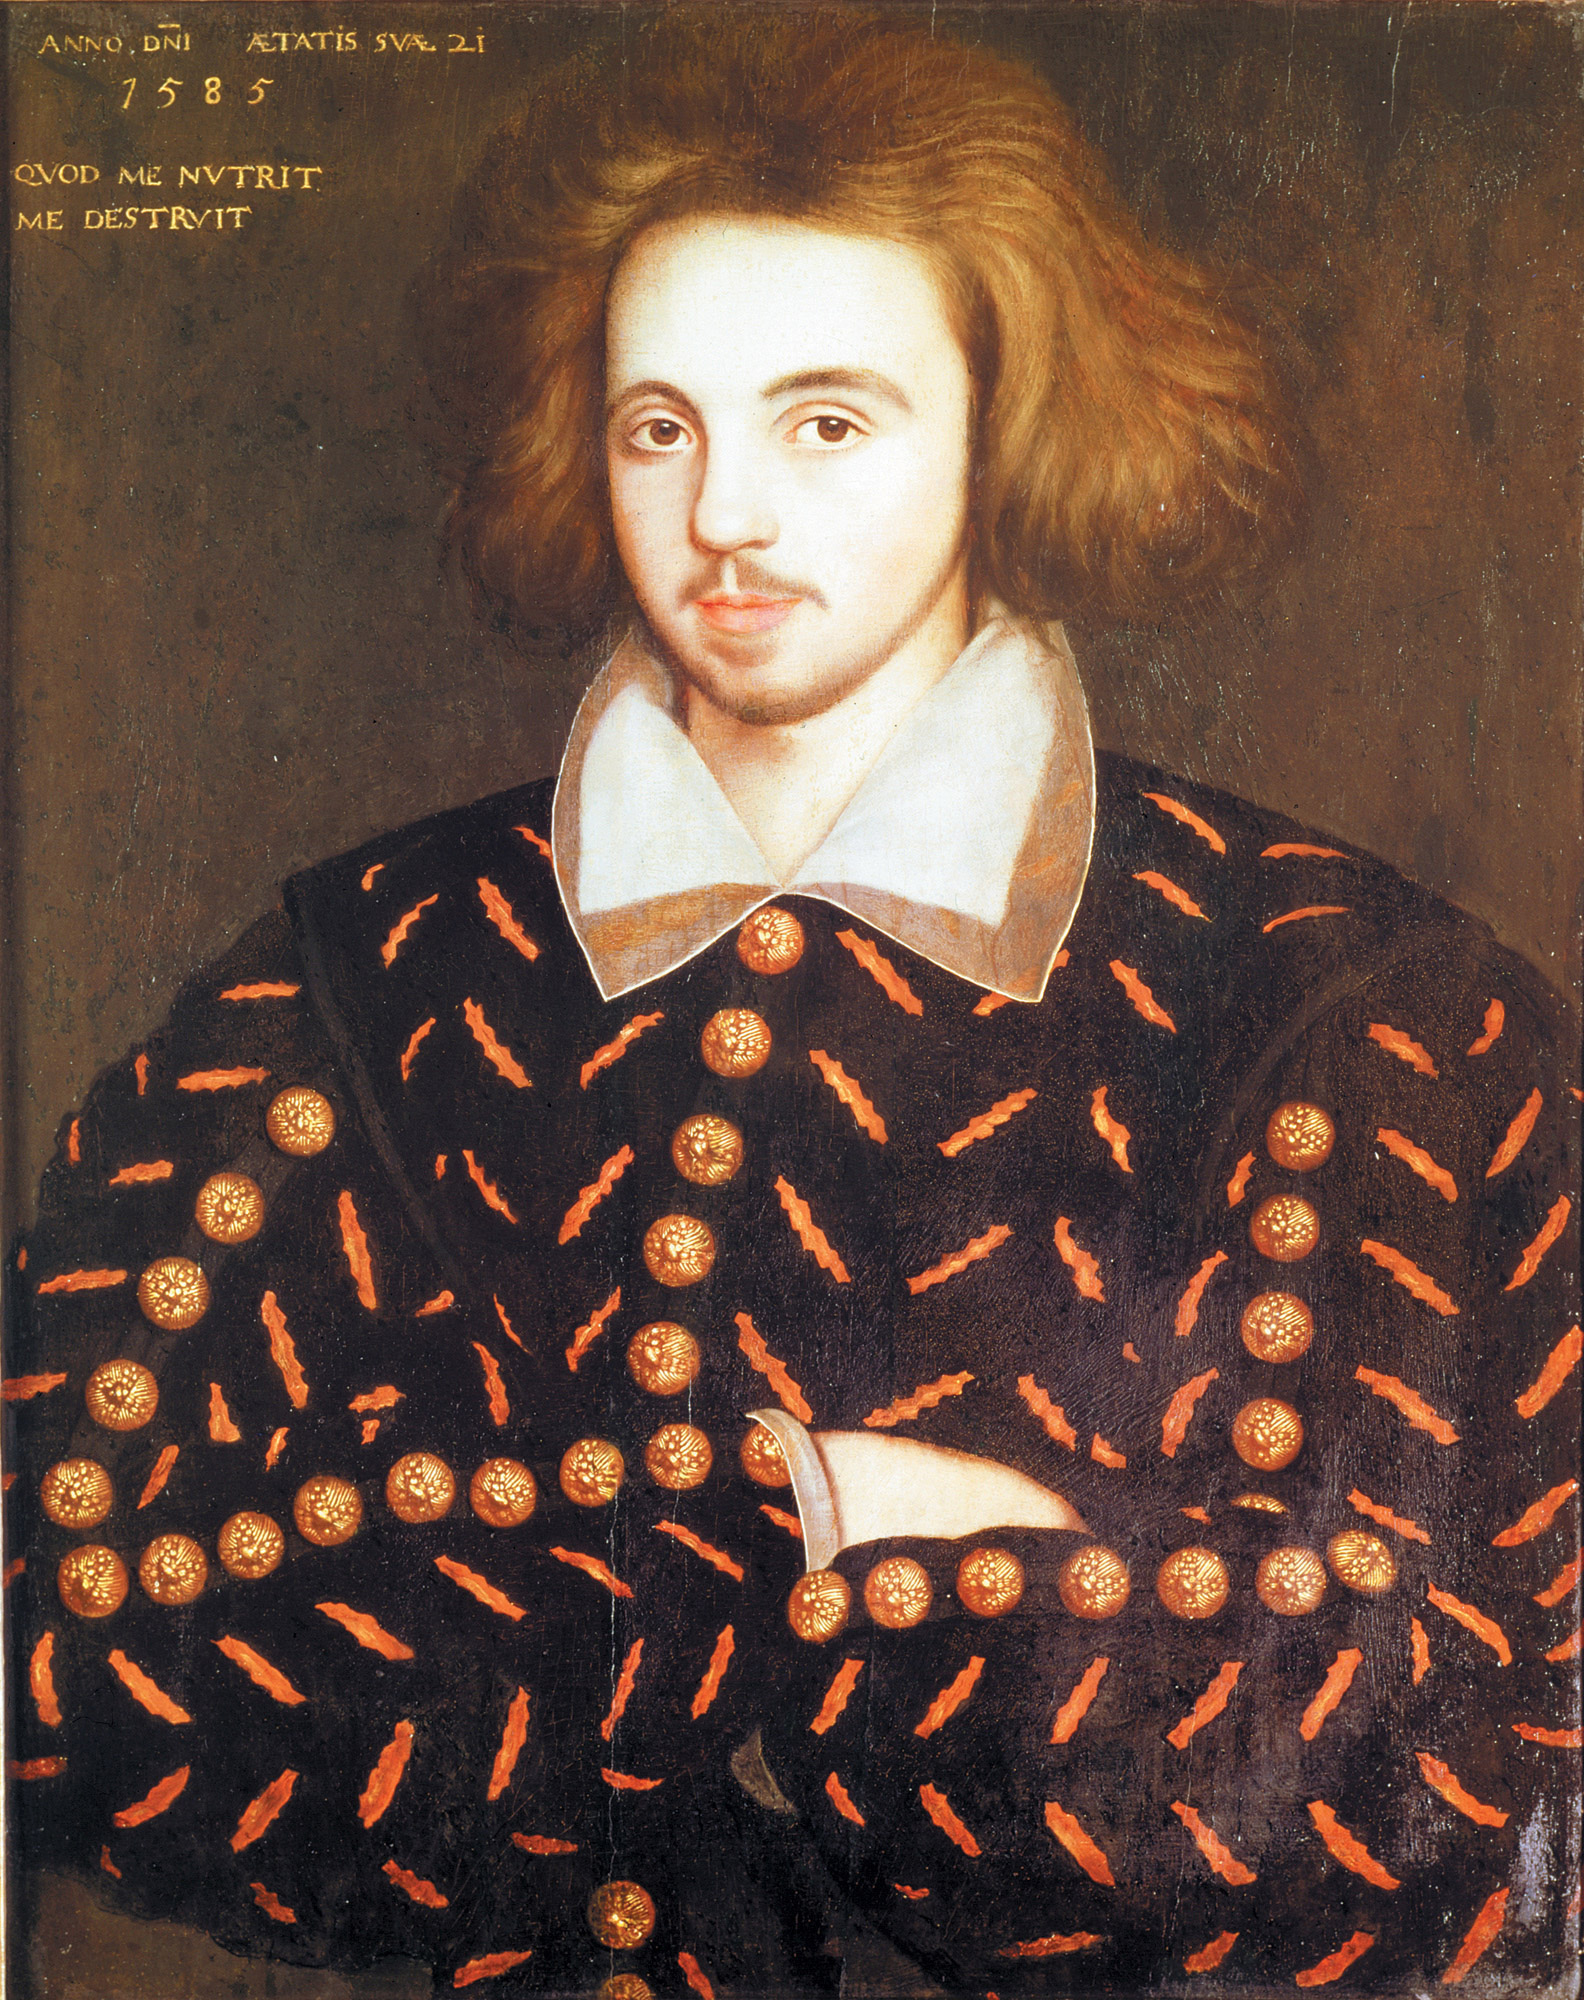 Christopher Marlowe?